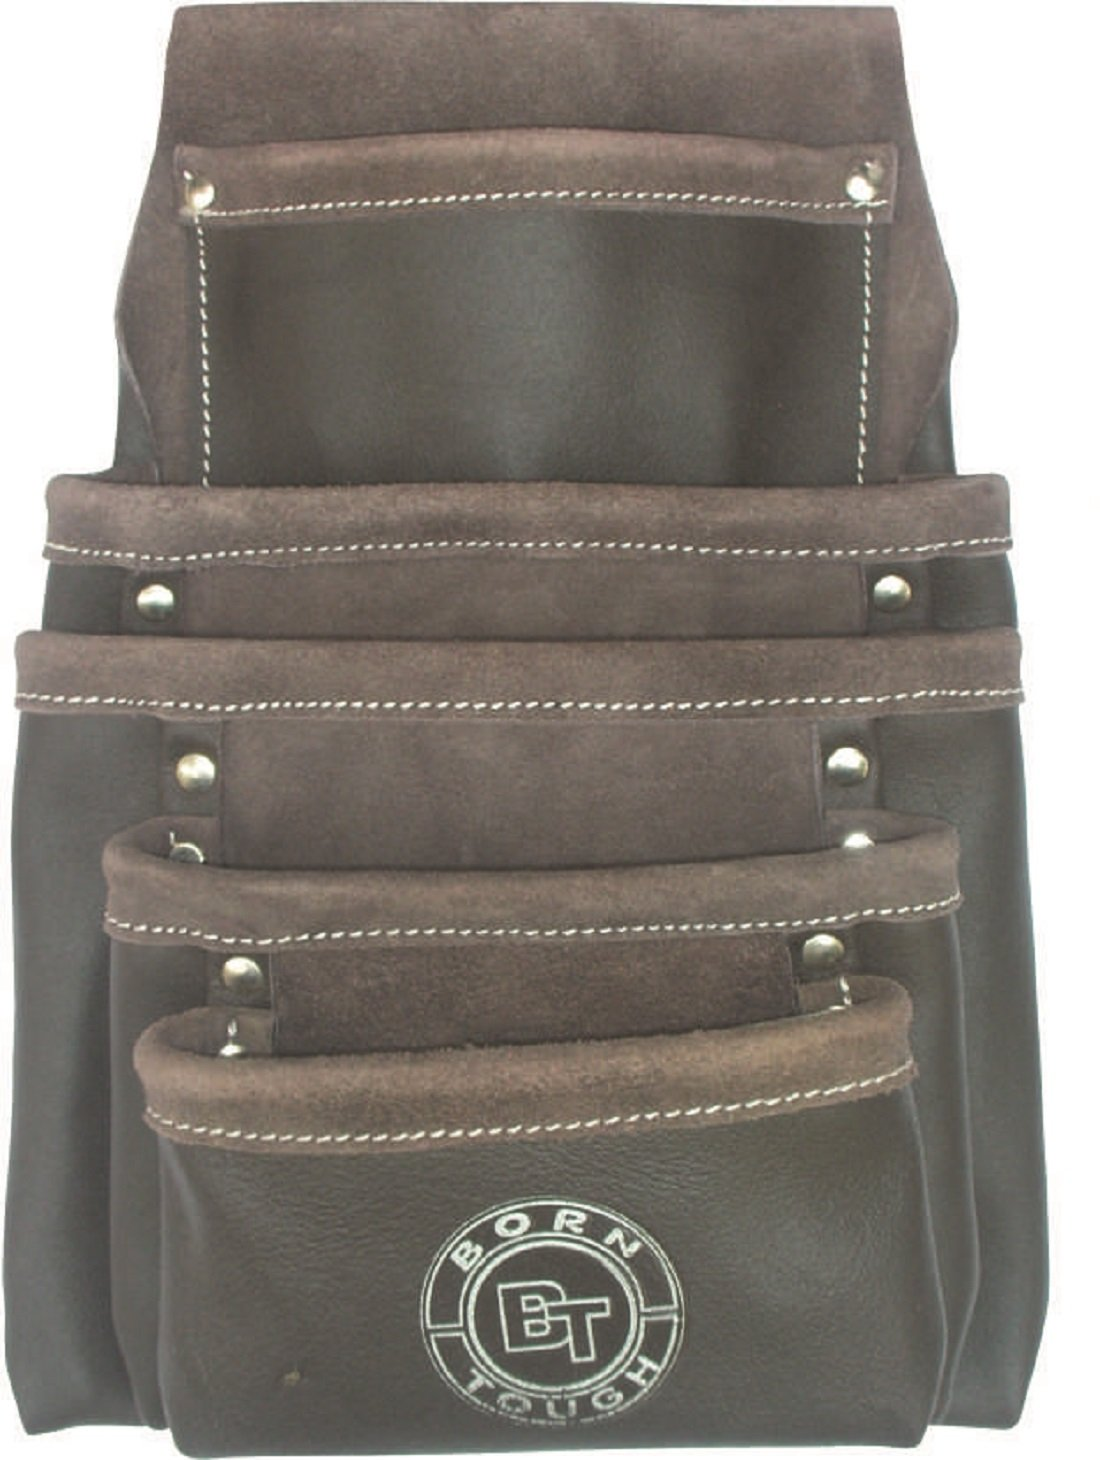 5 Pocket Oil Tanned Leather Nail and Tool Pouch Bag by Born Tough